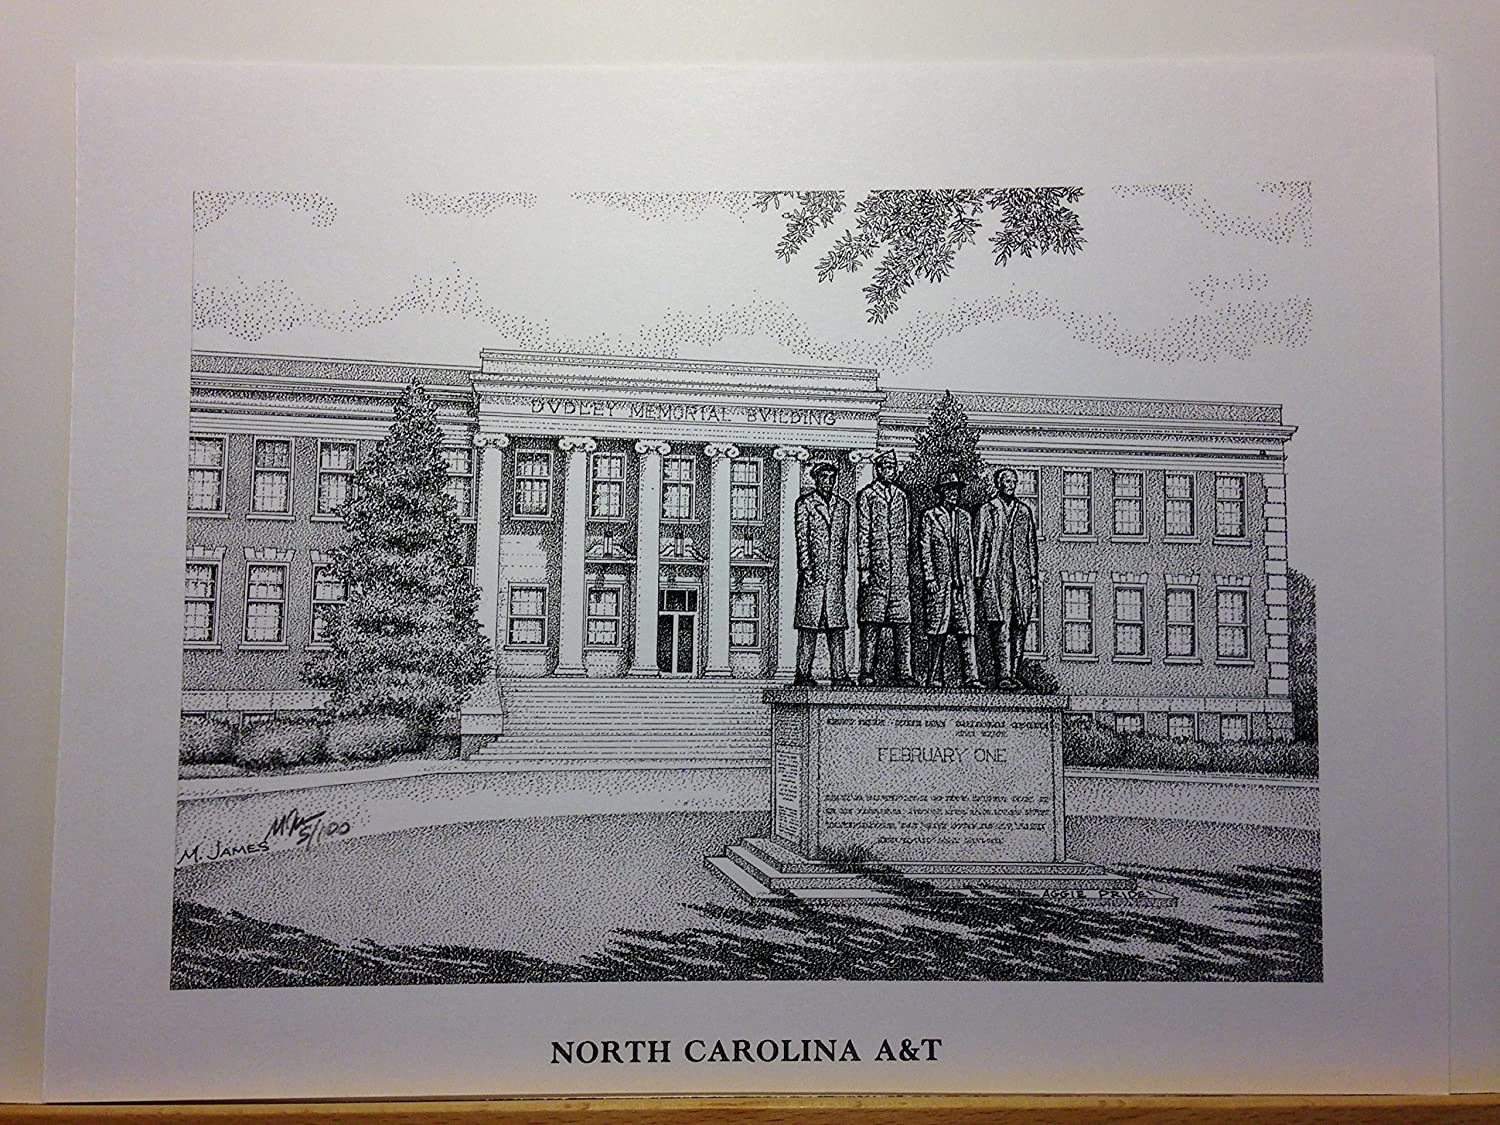 North Carolina A&T - February One 9x12 pen and ink print